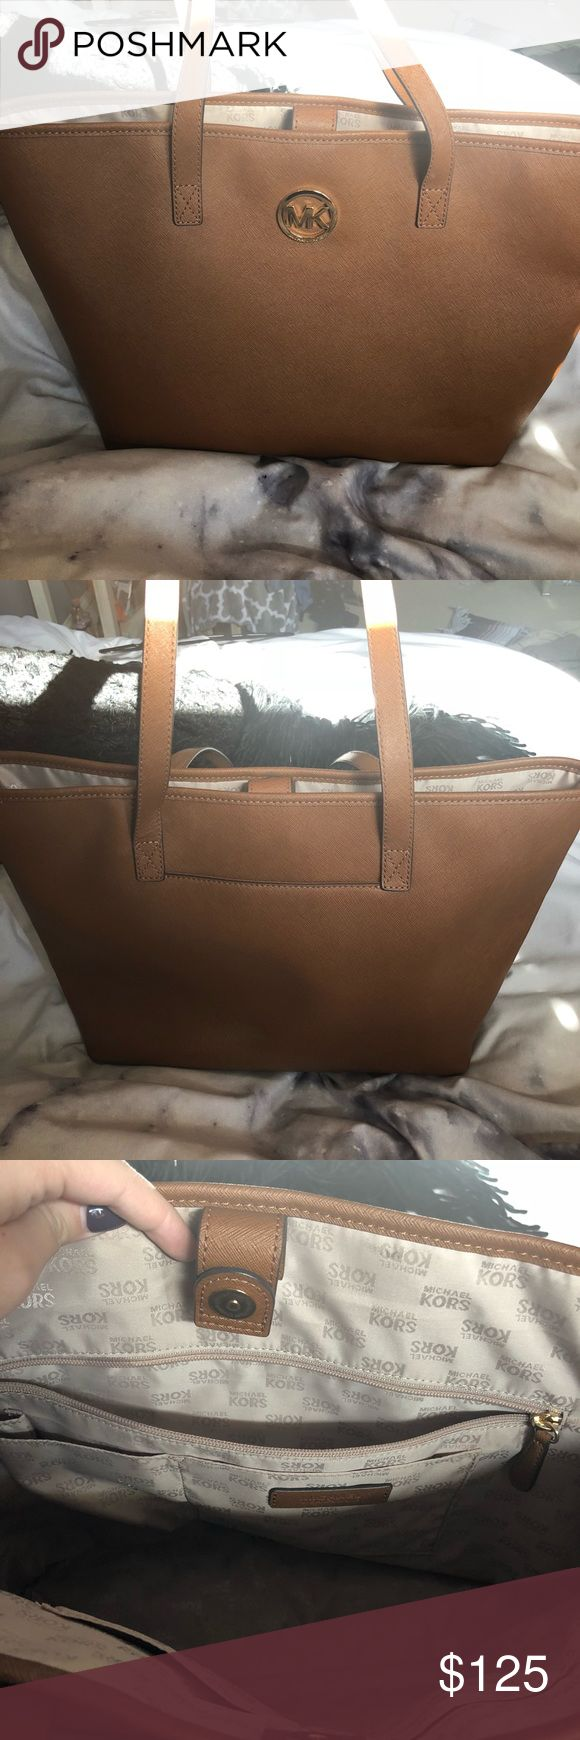 Michael Kors Tote The tote looks brand new in amazing condition! I️ have never used I️t before at all. Very open and can carry many things, a great Christmas present! Also, willing to possibly negotiate price. KORS Michael Kors Bags Totes